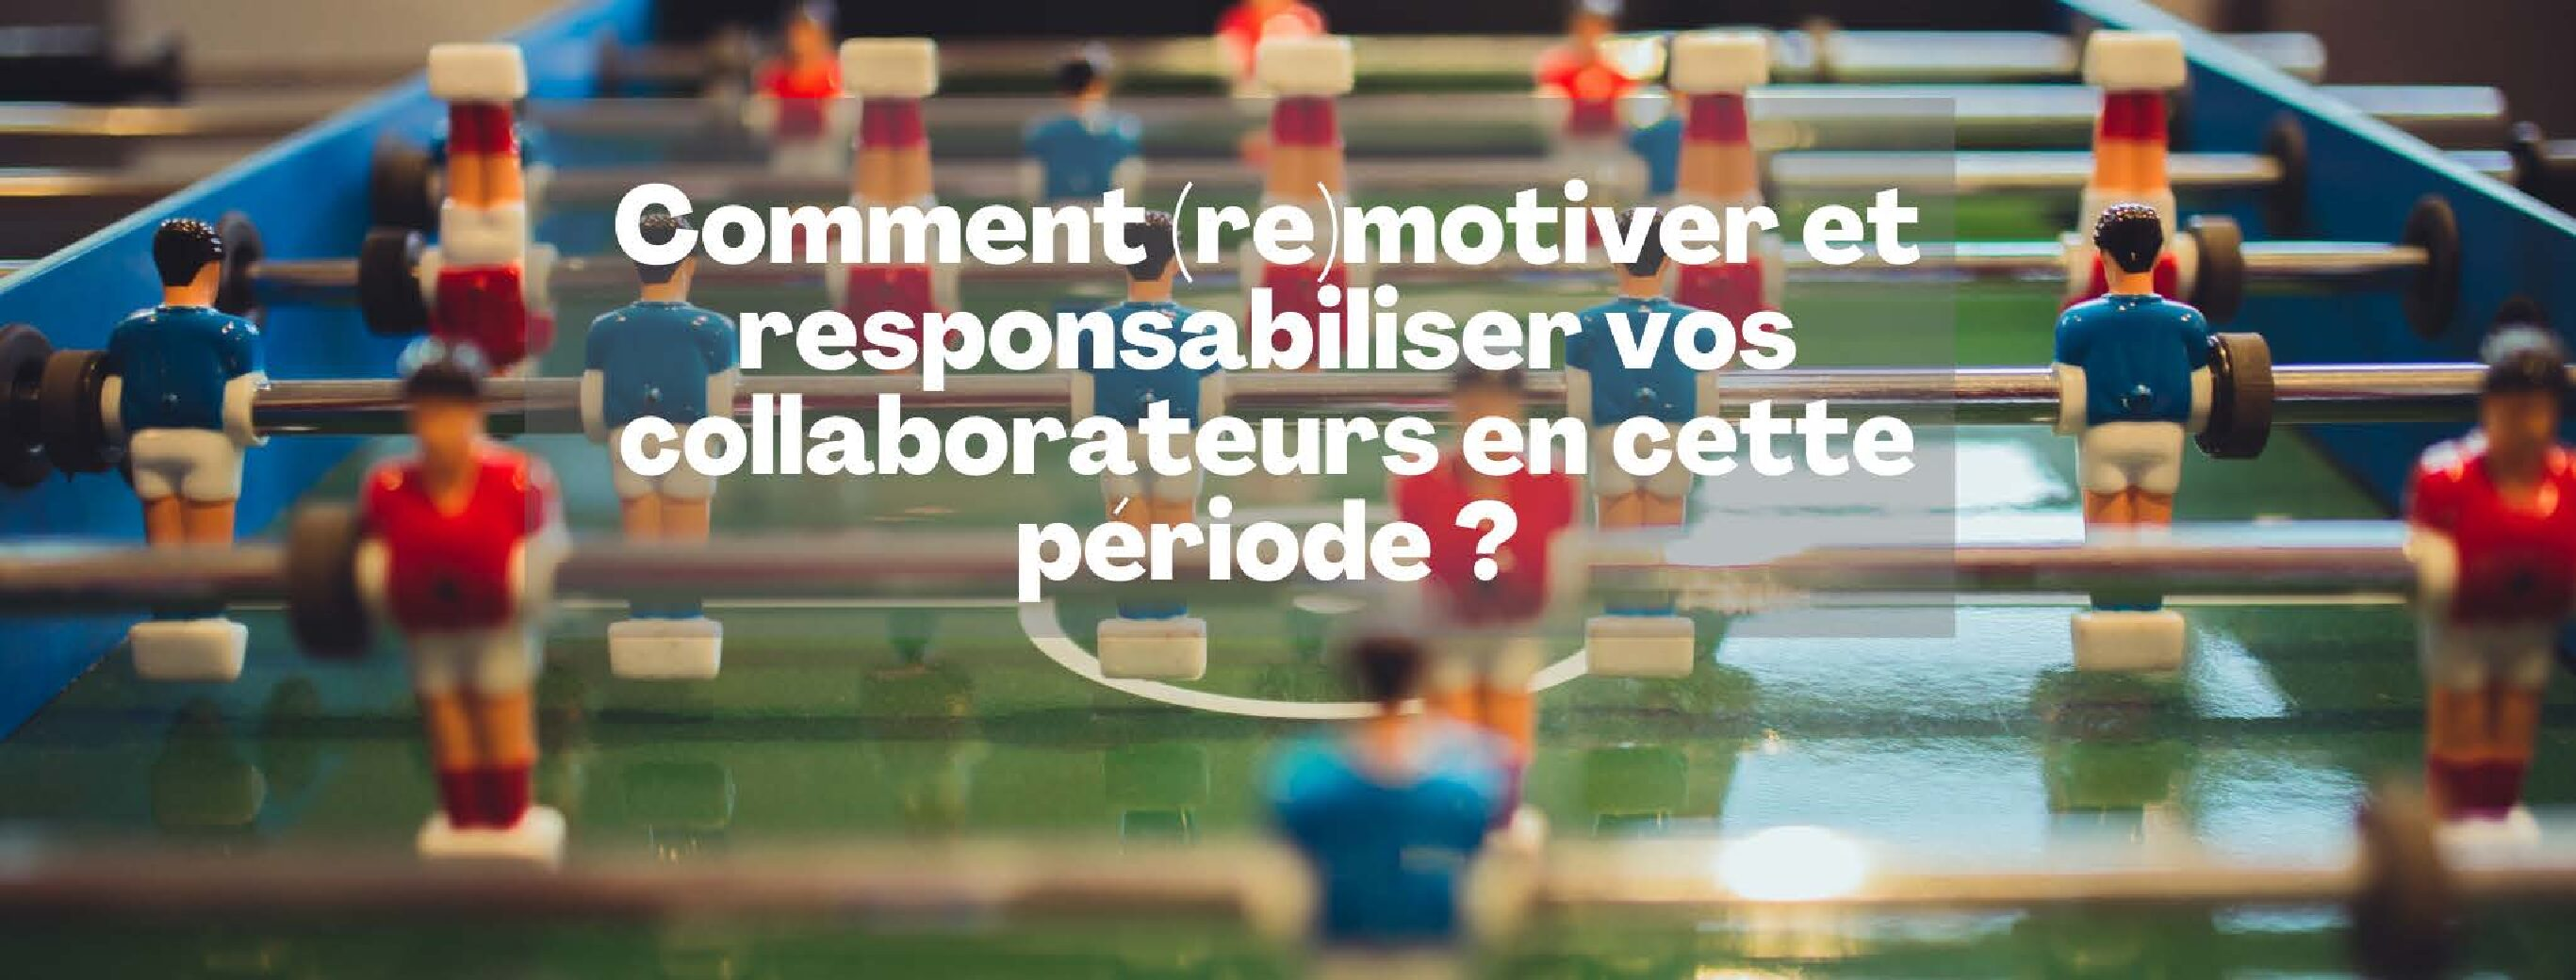 Comment (re)motiver et responsabiliser vos collaborateurs en cette période ?